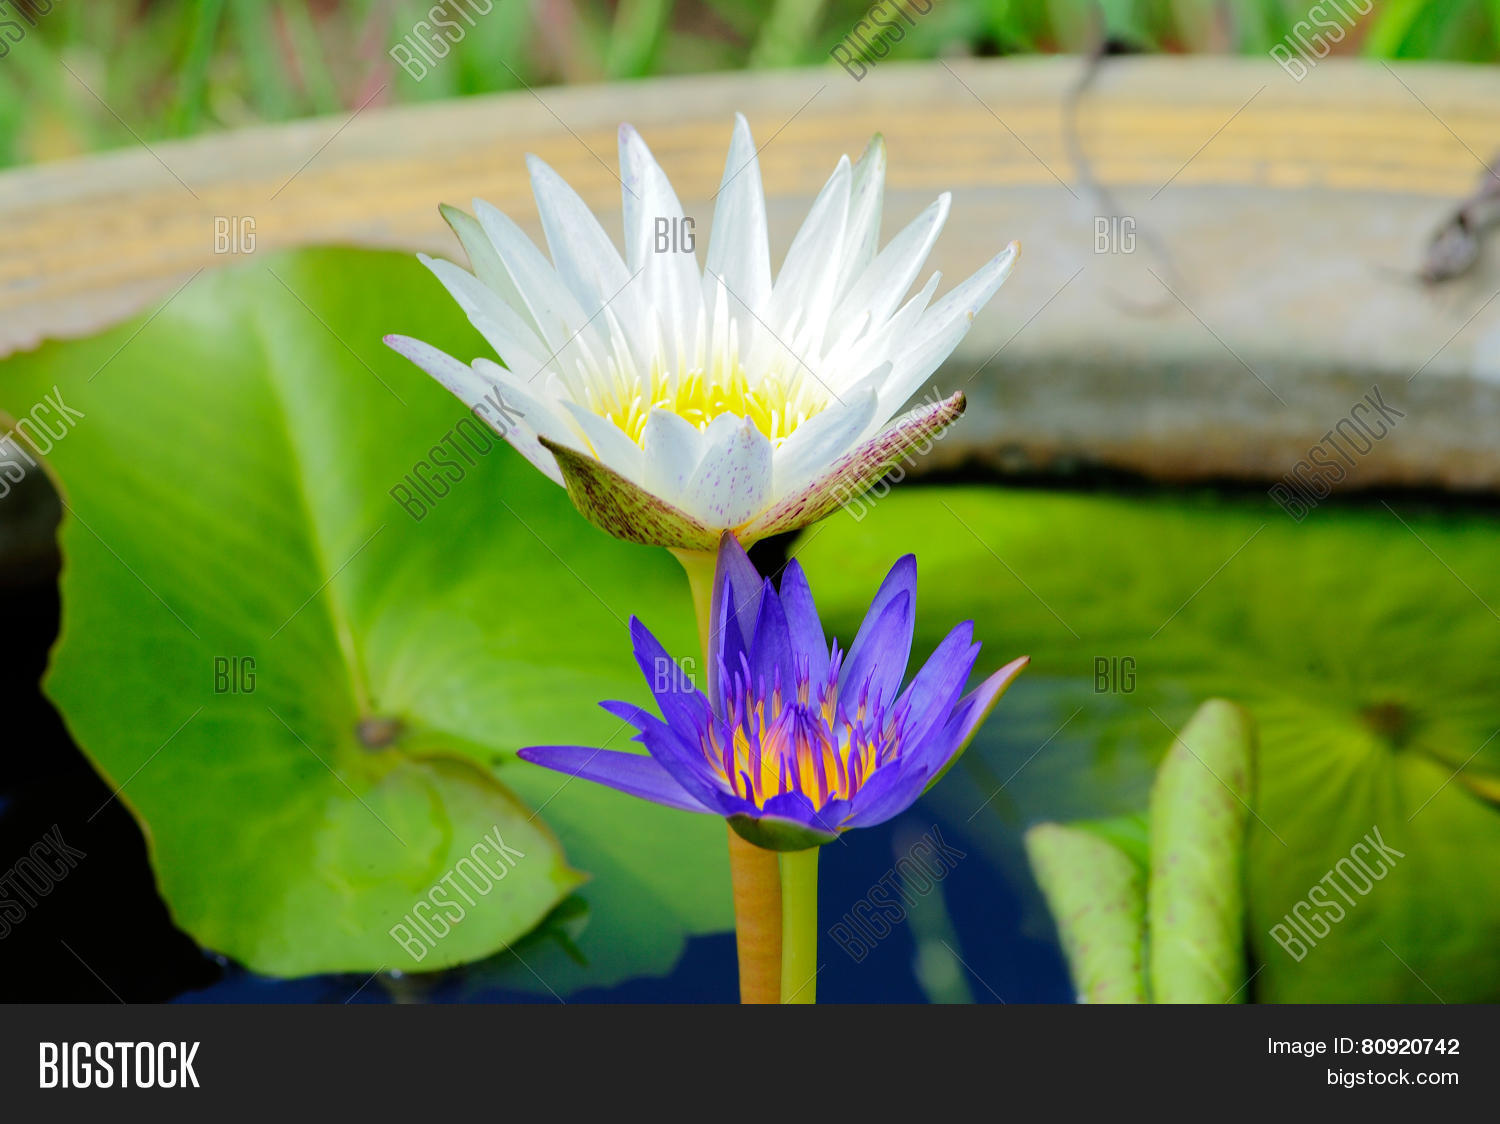 Lotus Flowers Image Photo Free Trial Bigstock